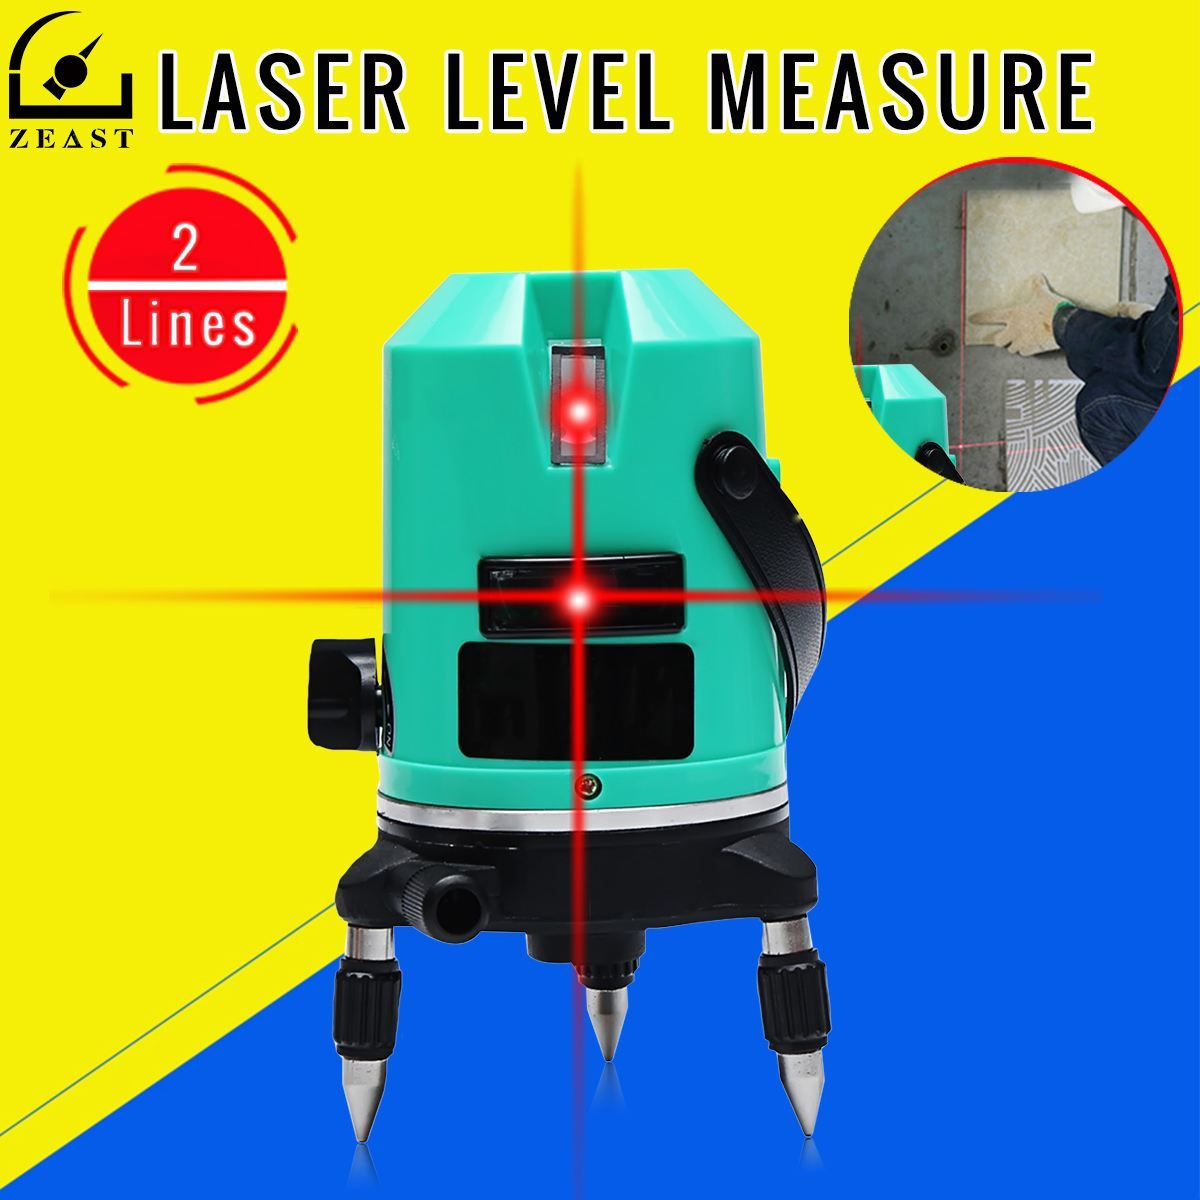 Laser Level Red 2 Line Automatic 360 Degree Self Leveling Cross Line Measure 635nm Laser IP-54 Waterproof